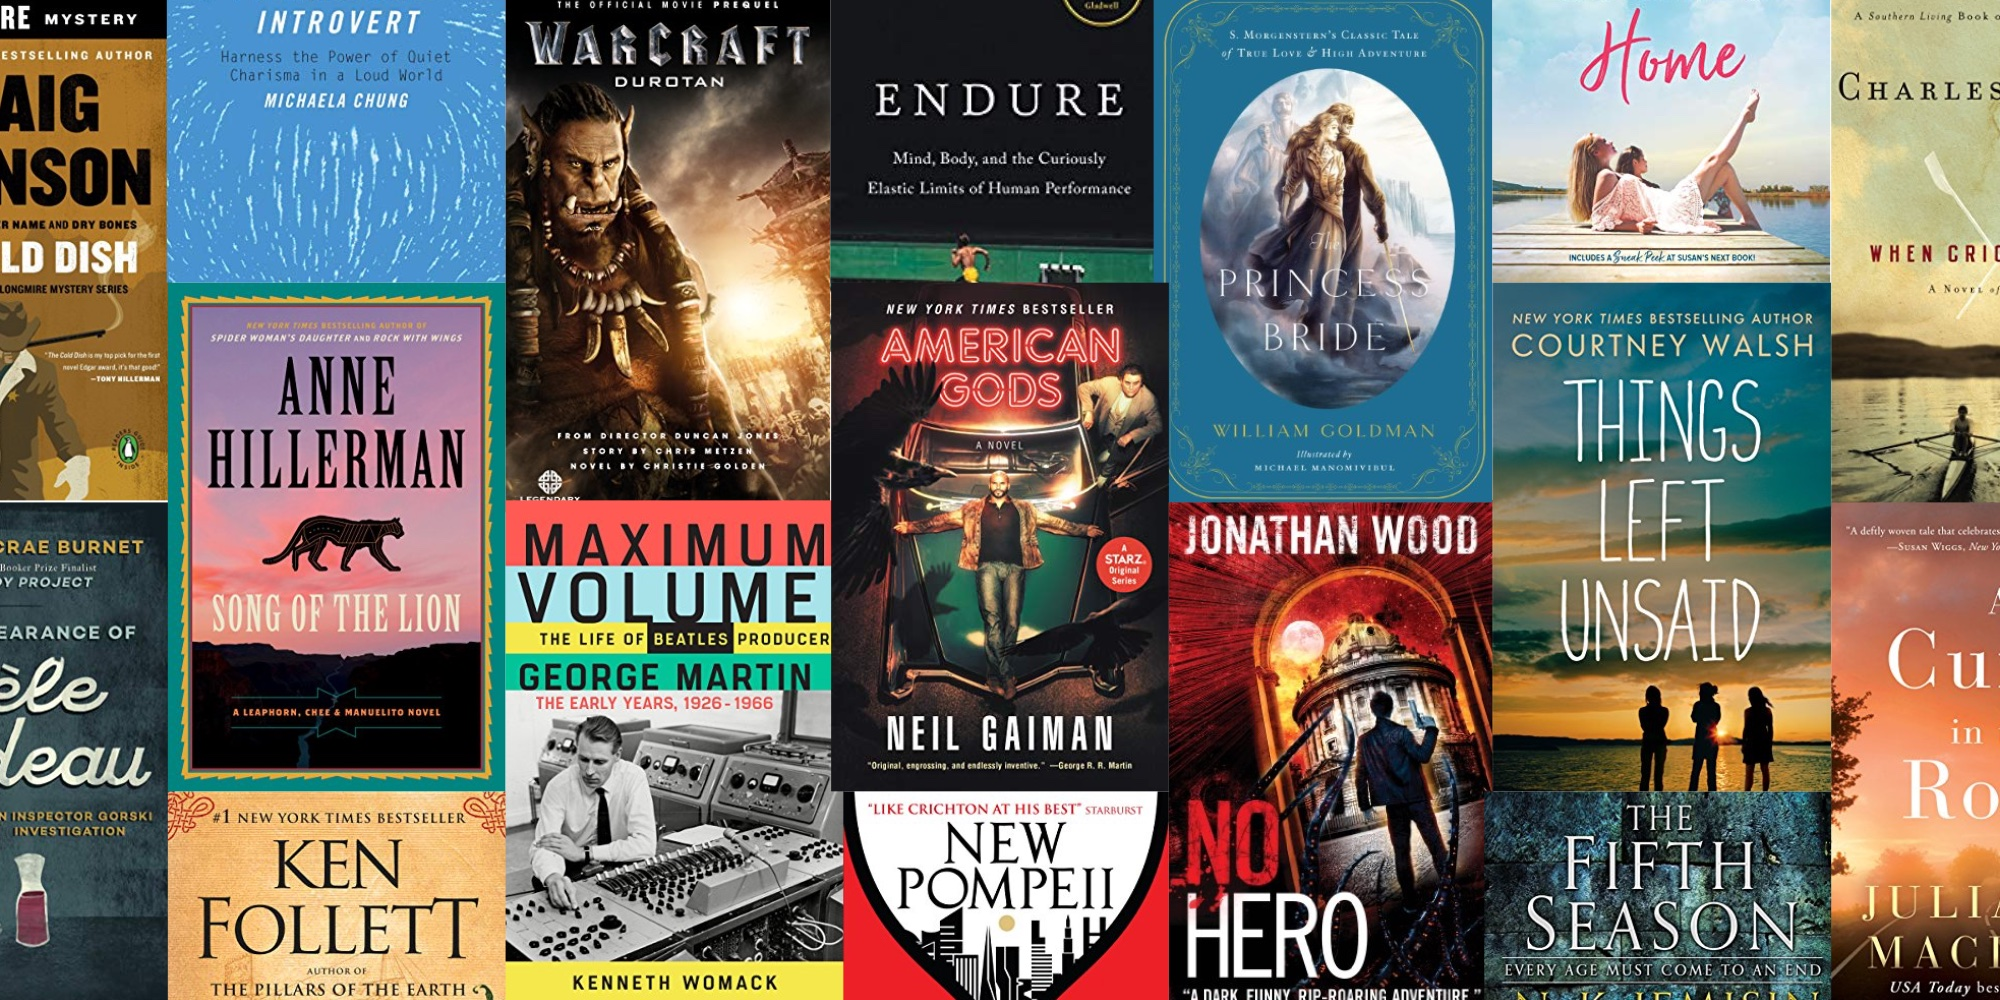 Grow your Kindle library w/ discounted top reads in today's eBook